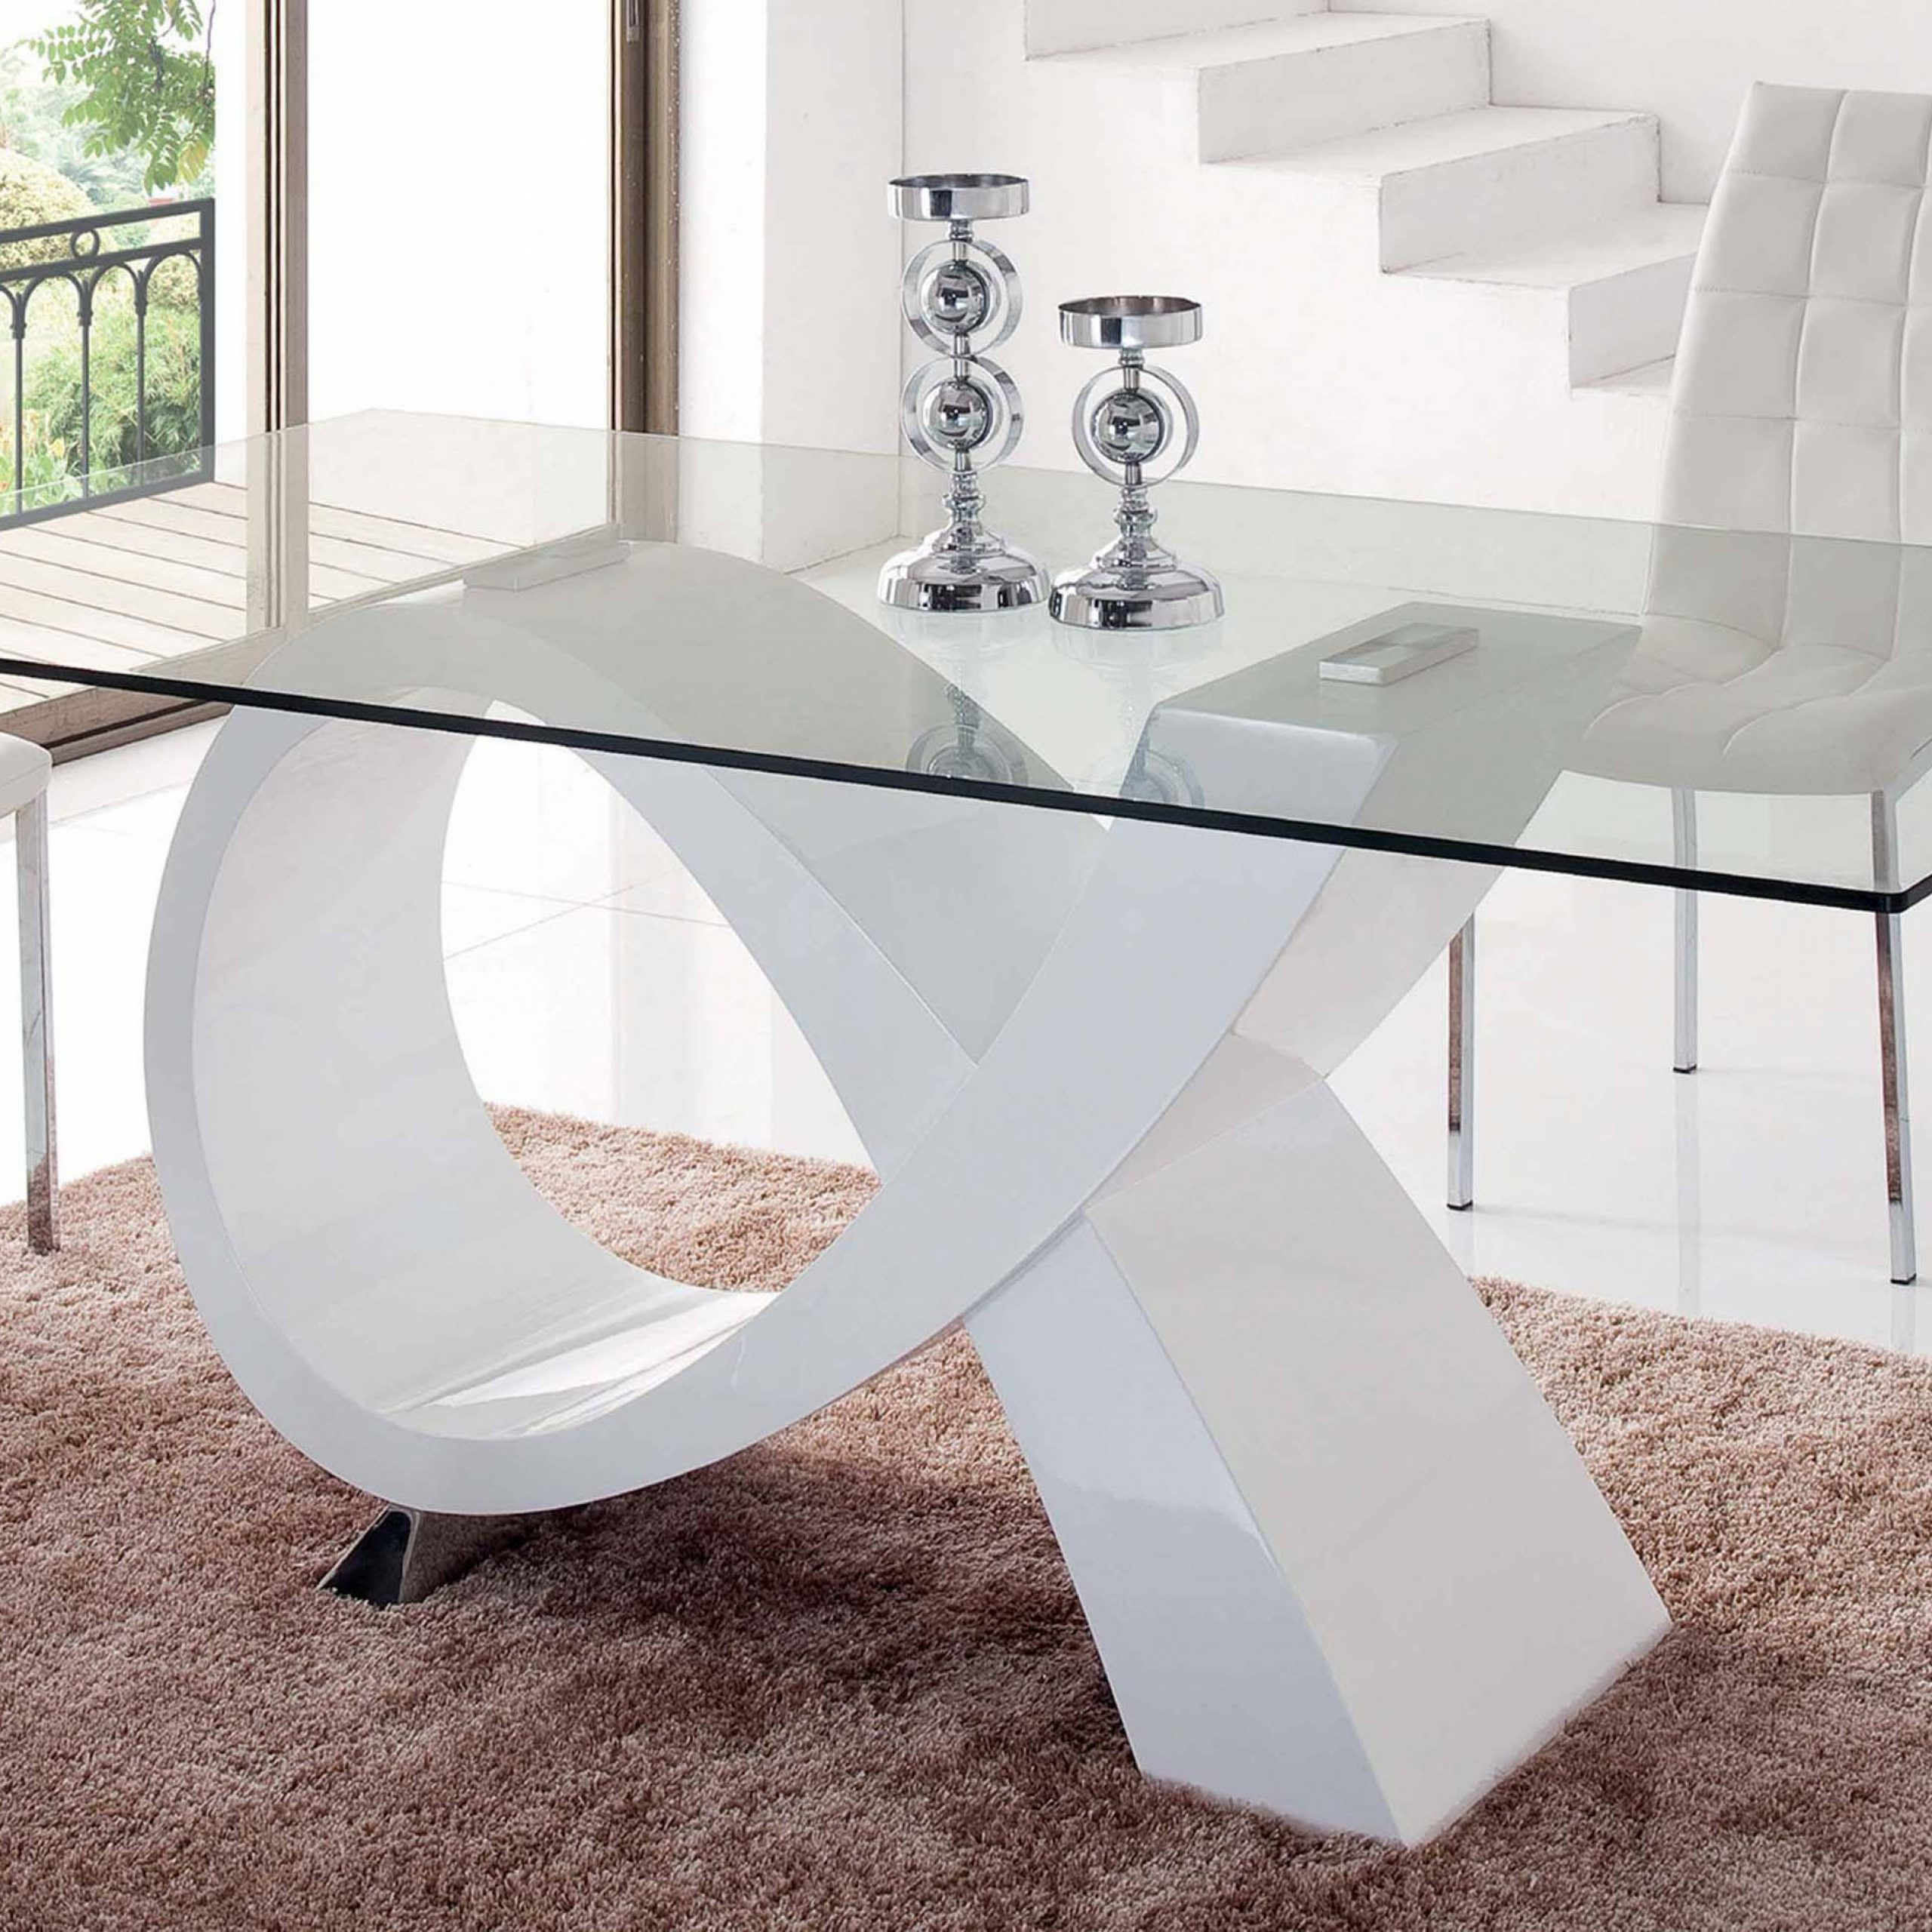 Modern Rectangular Glass Top High Gloss Finish White Dining Throughout Well Known Contemporary Rectangular Dining Tables (Gallery 15 of 30)